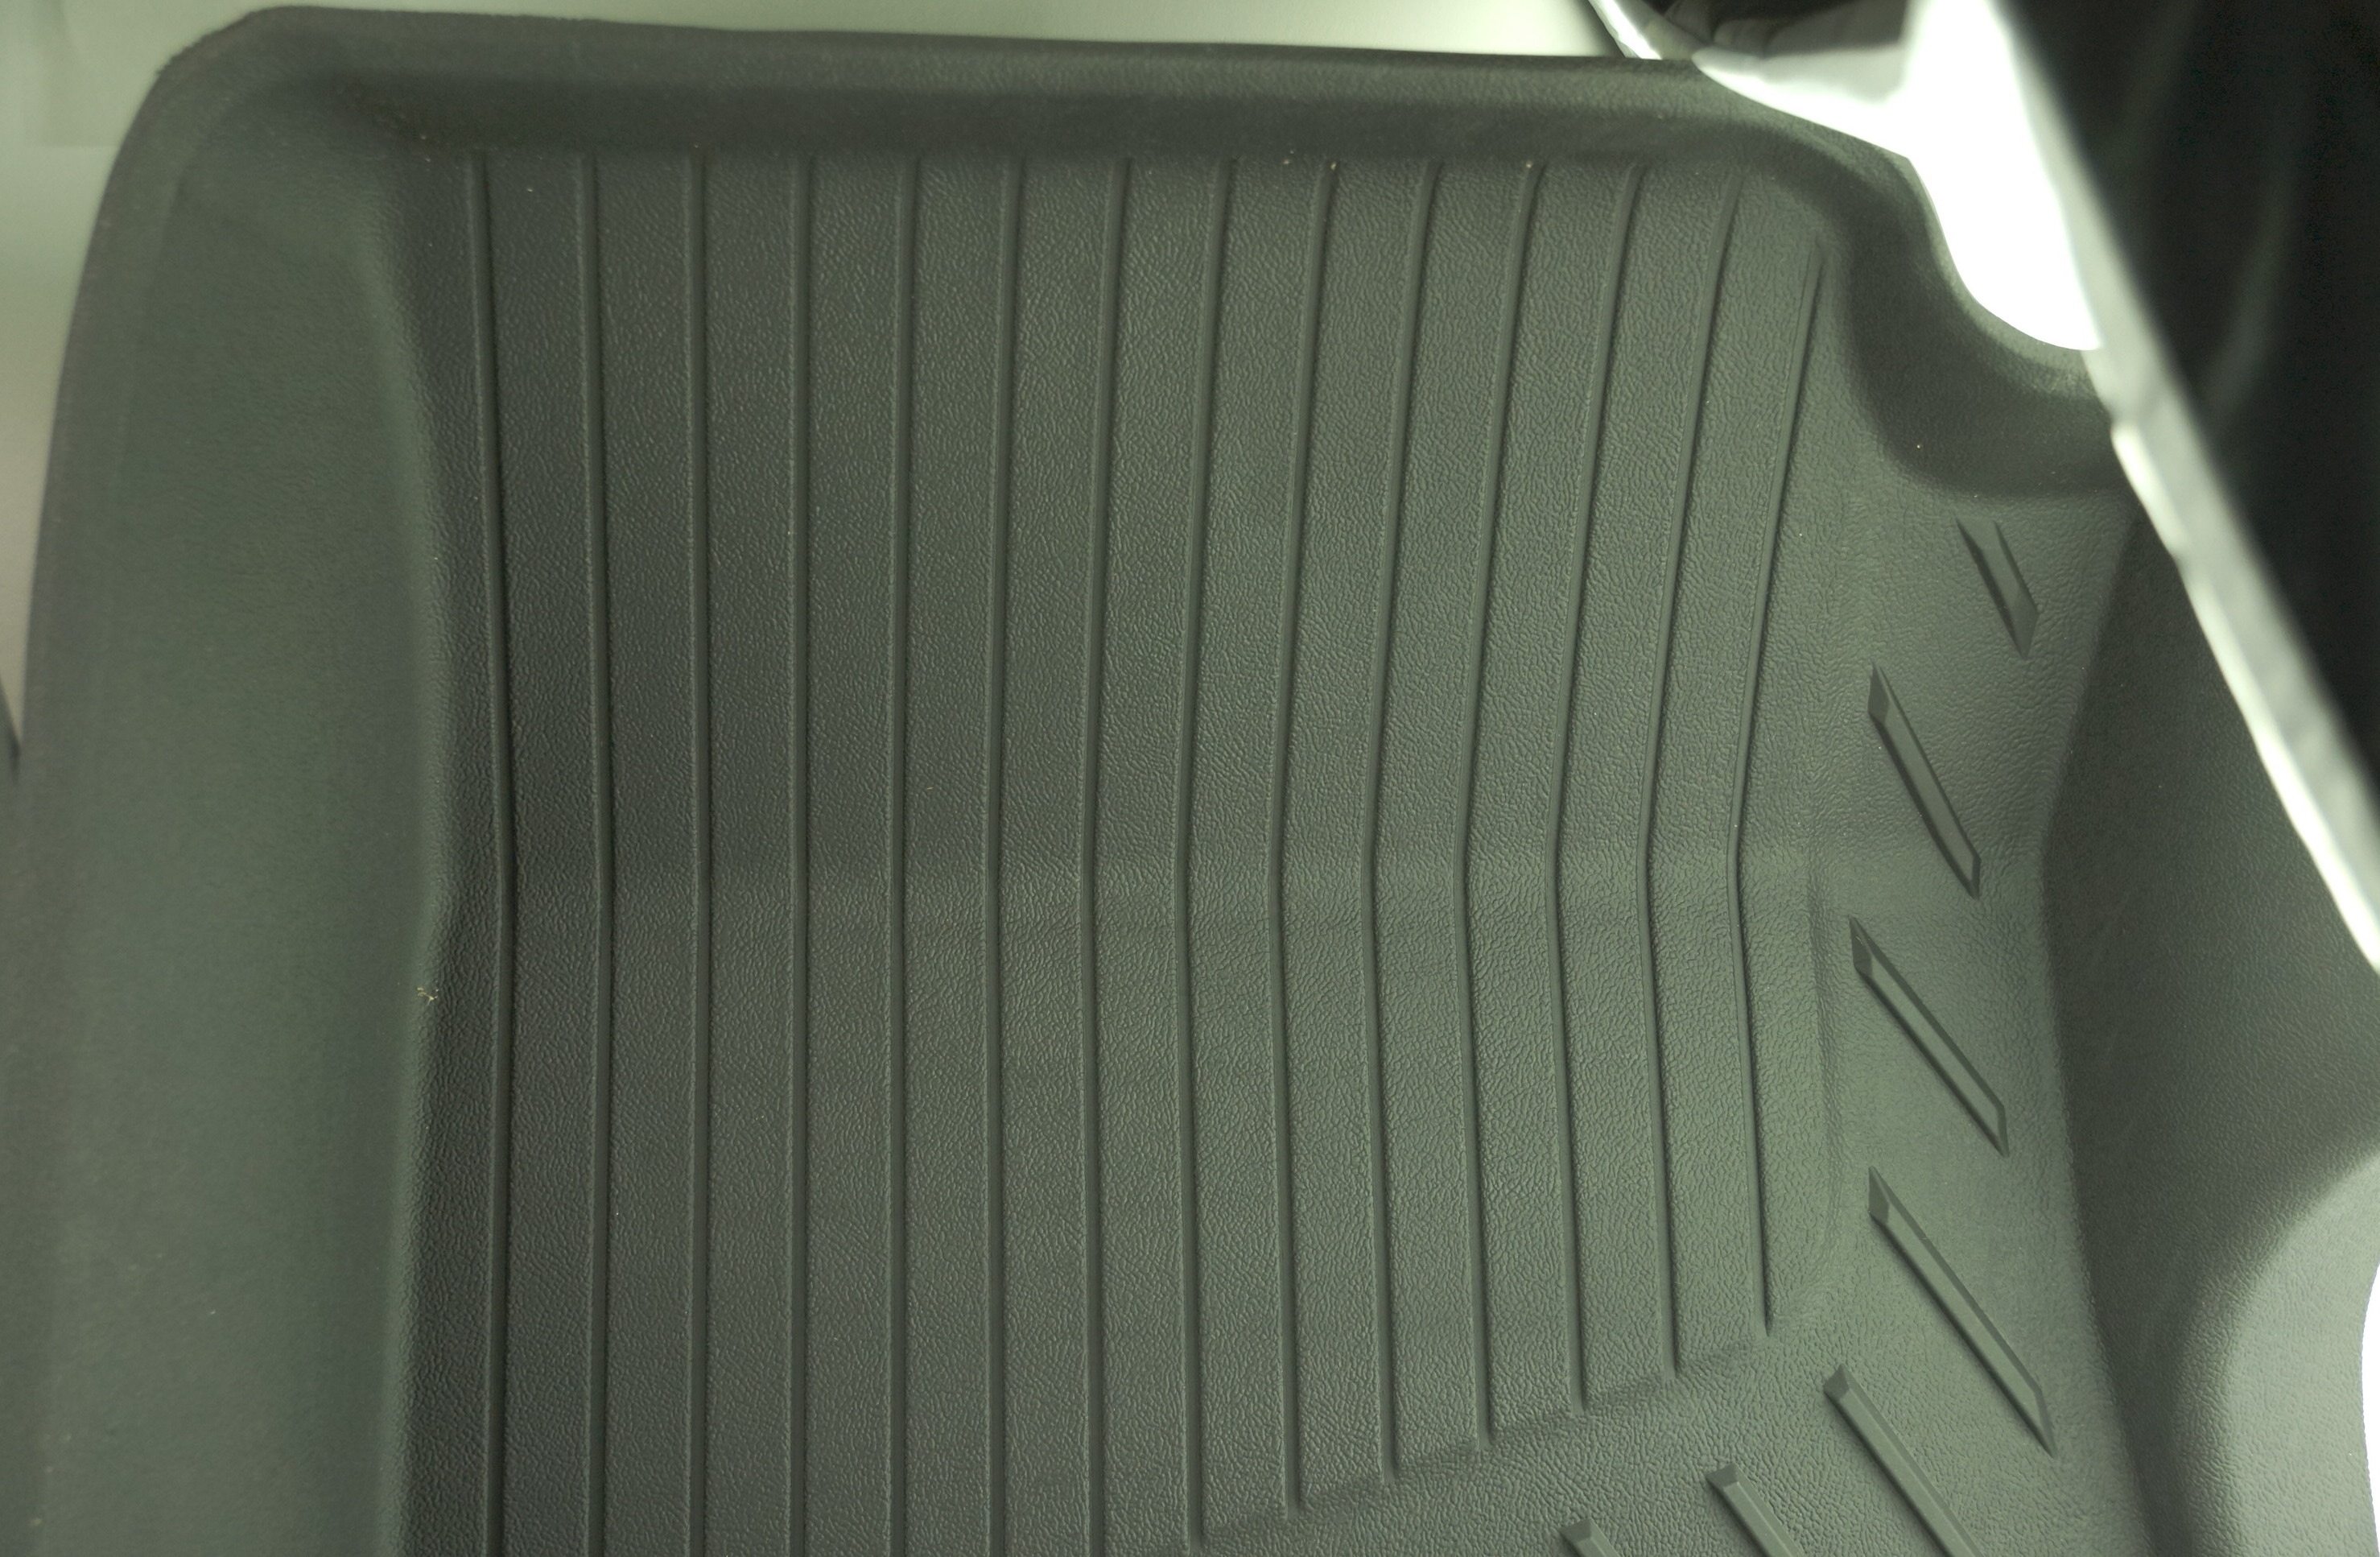 New OEM 84370633 GM 15-21 Colorado Front All Weather Floor Liners Black w/Bowtie - image 7